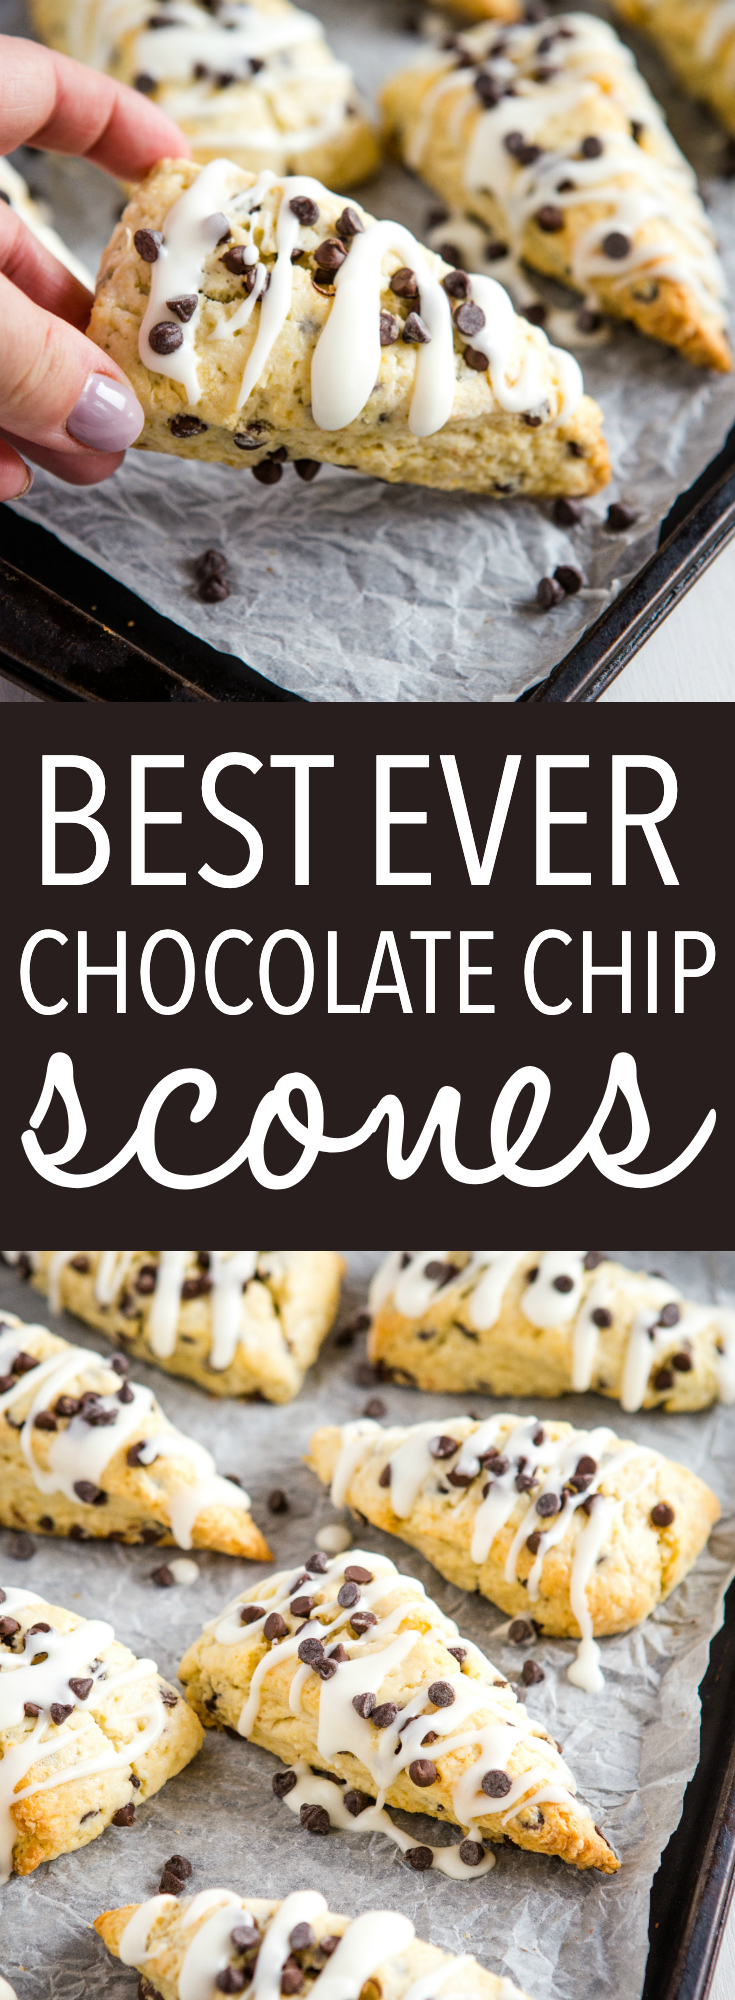 These Best Ever Chocolate Chip Scones are the perfect snack or dessert to enjoy with coffee or tea, and they're SO easy to make for beginning bakers! Packed with mini chocolate chips and topped with a simple sweet glaze! Recipe from thebusybaker.ca! #scones #chocolatechip #baking #easyrecipe #british #tea #snack #biscuits via @busybakerblog